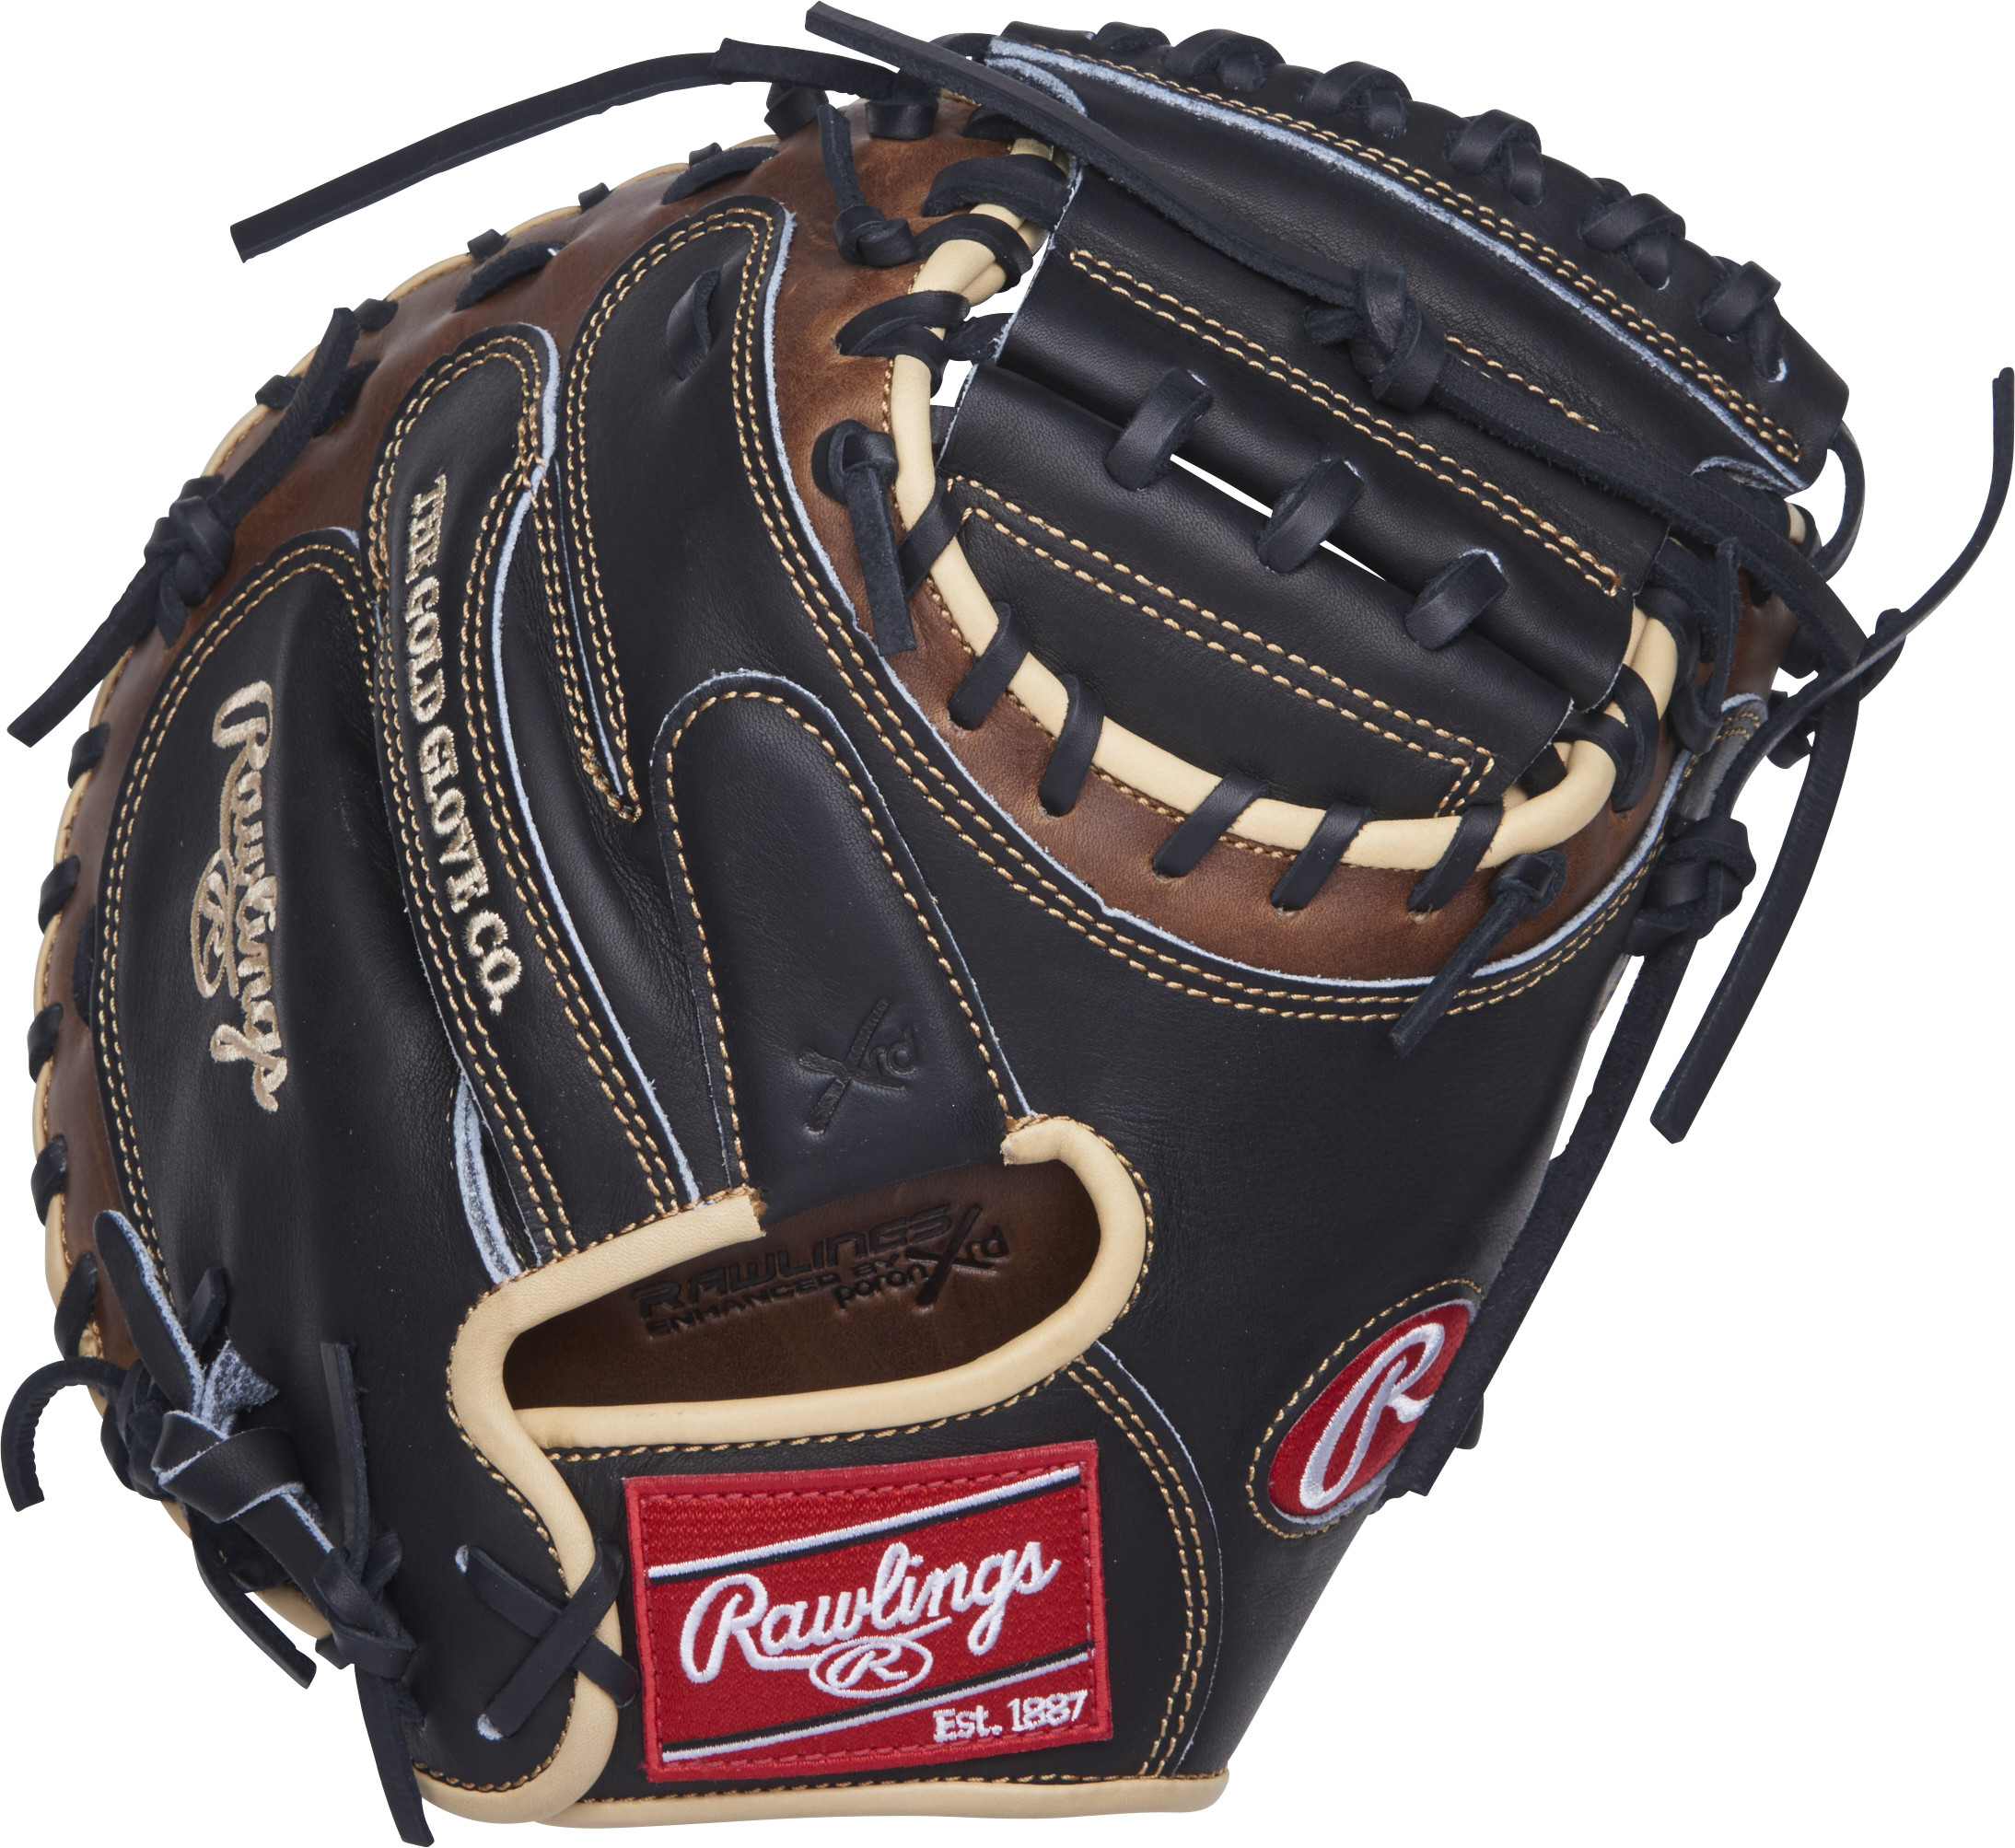 http://www.bestbatdeals.com/images/gloves/rawlings/PROCM33BSL-2.jpg